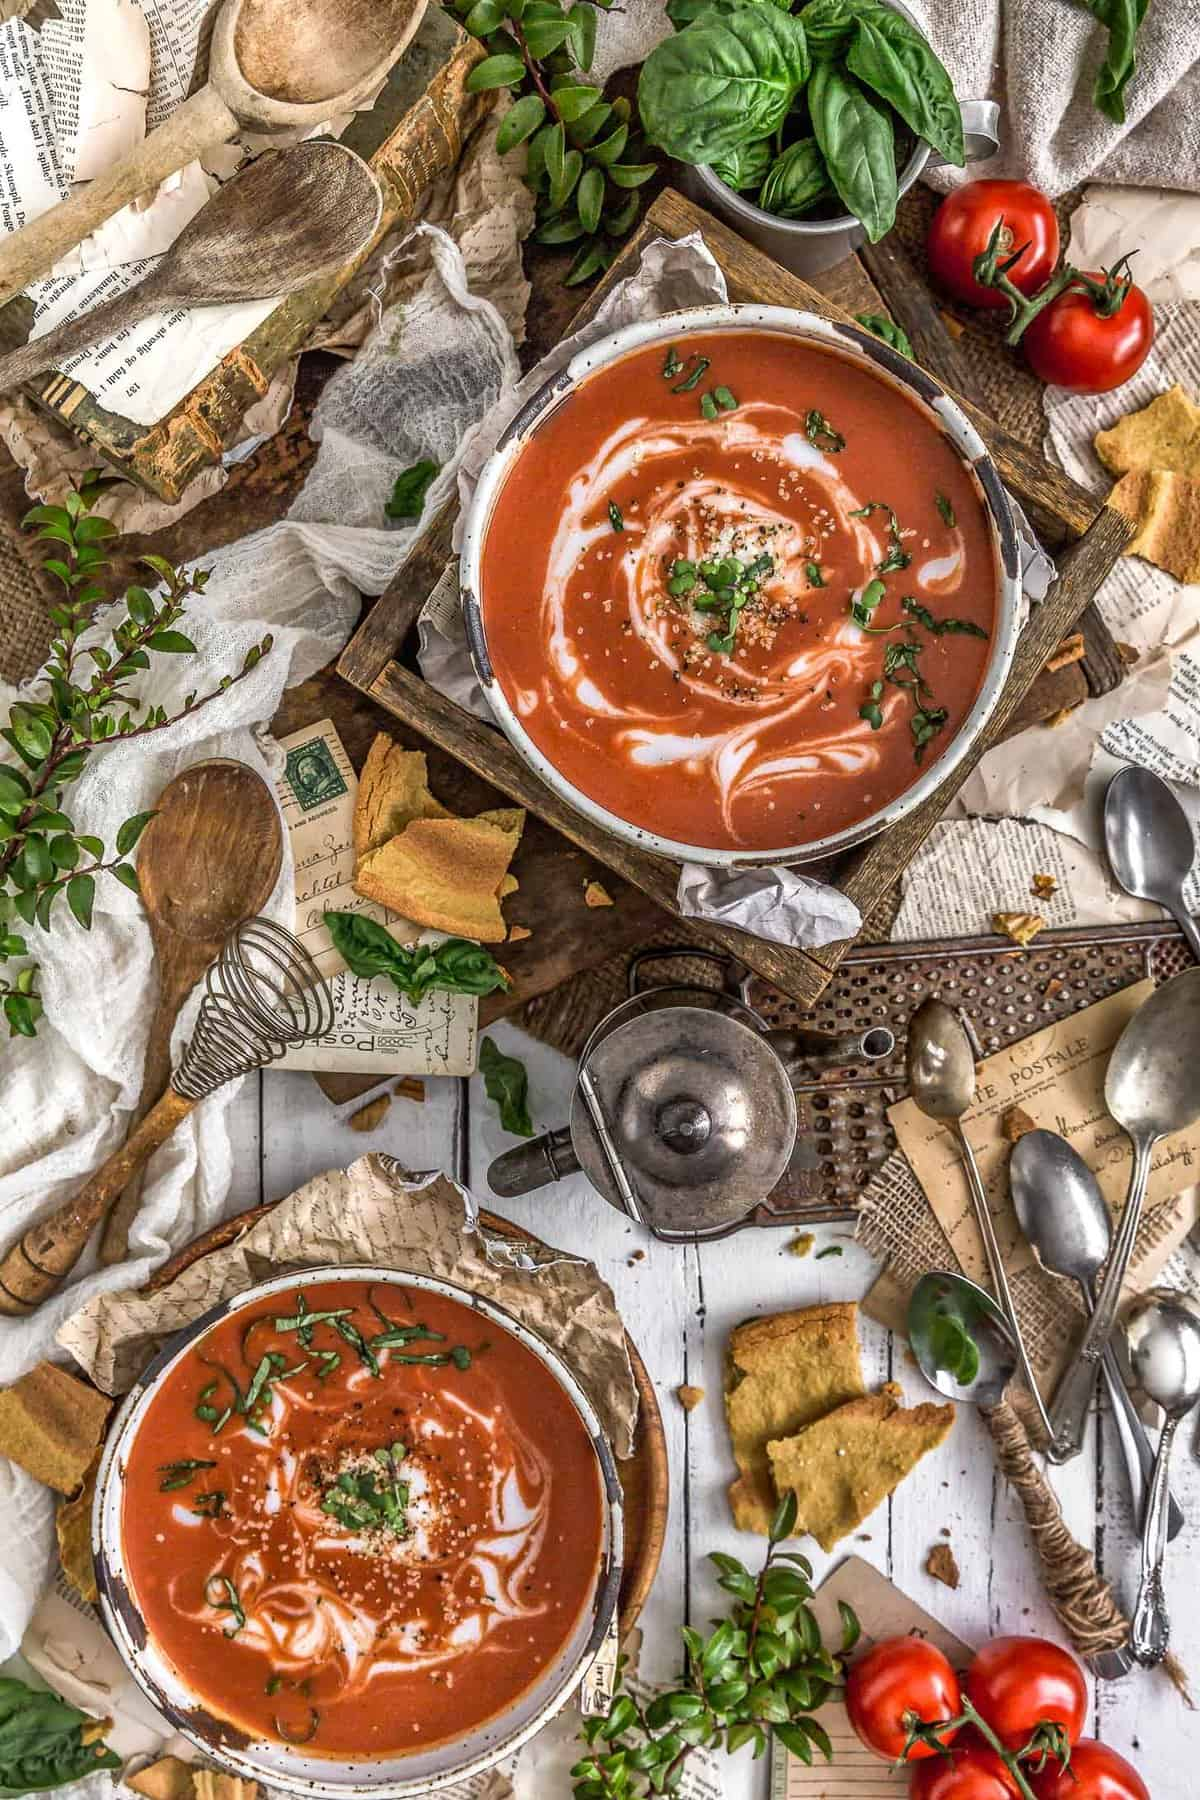 Tablescape of Fast and Easy Tomato Soup